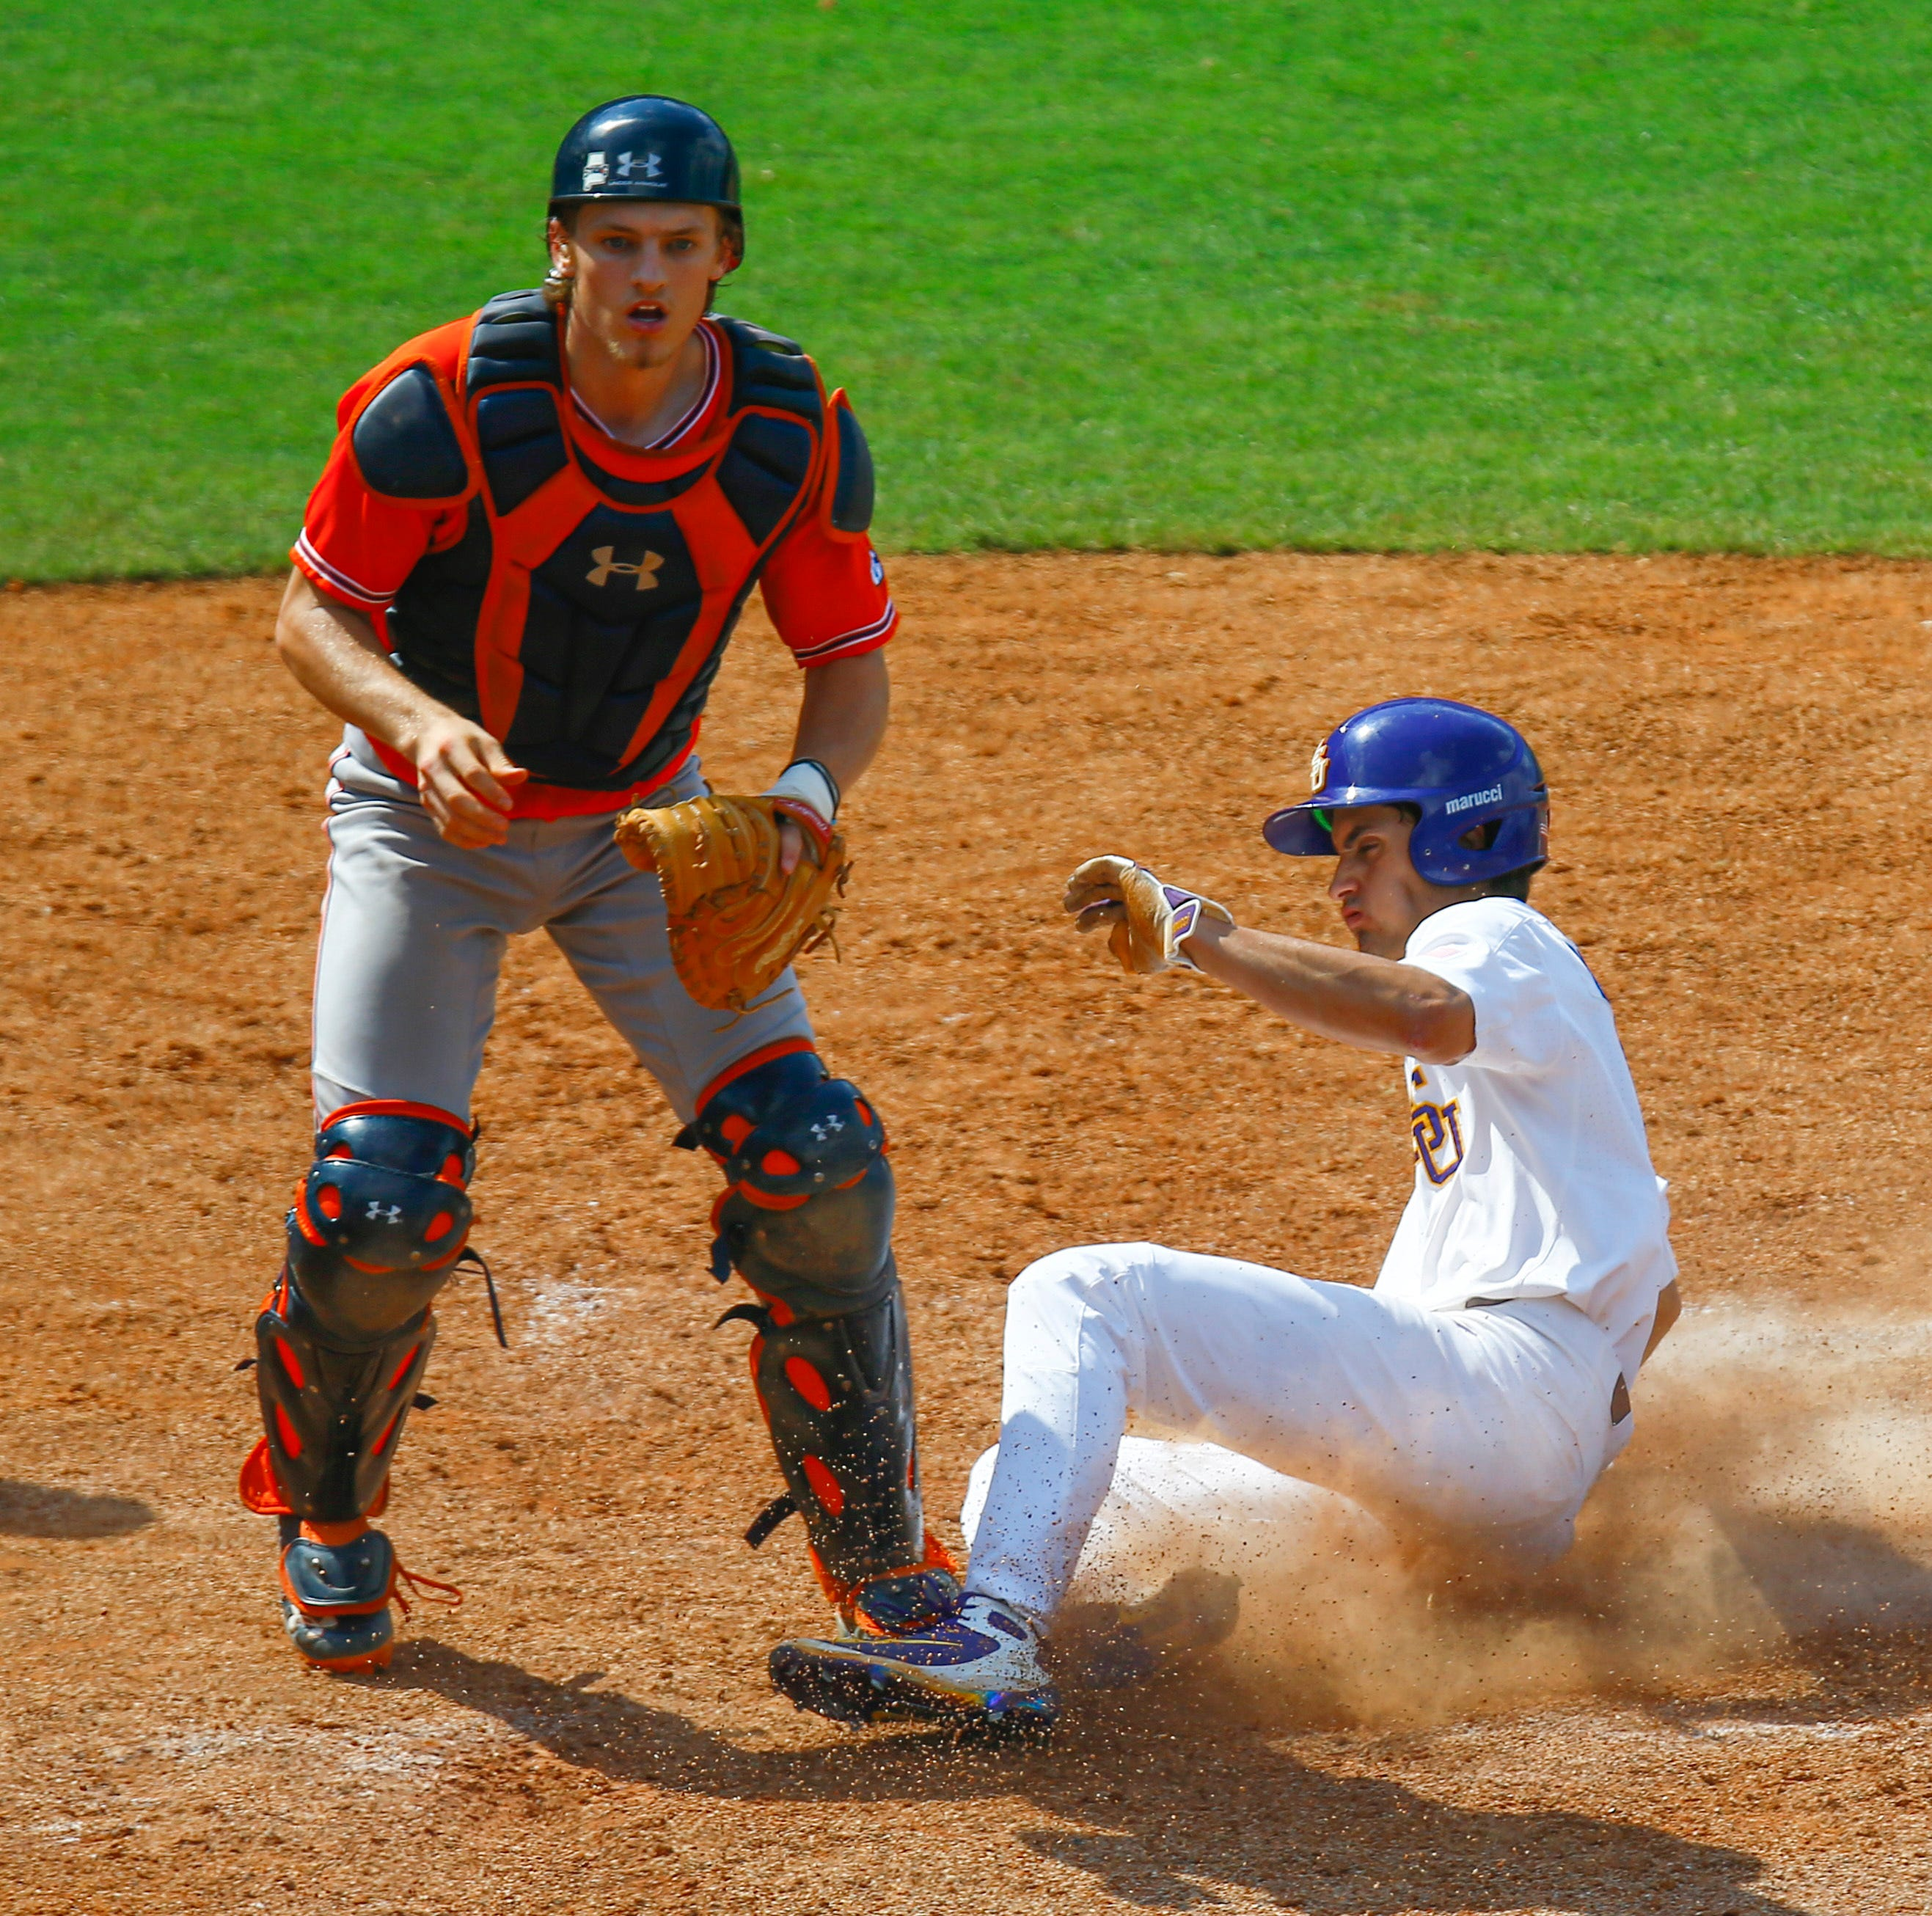 Auburn's run through the SEC Tournament ends with a ball in the dirt and heartbreak